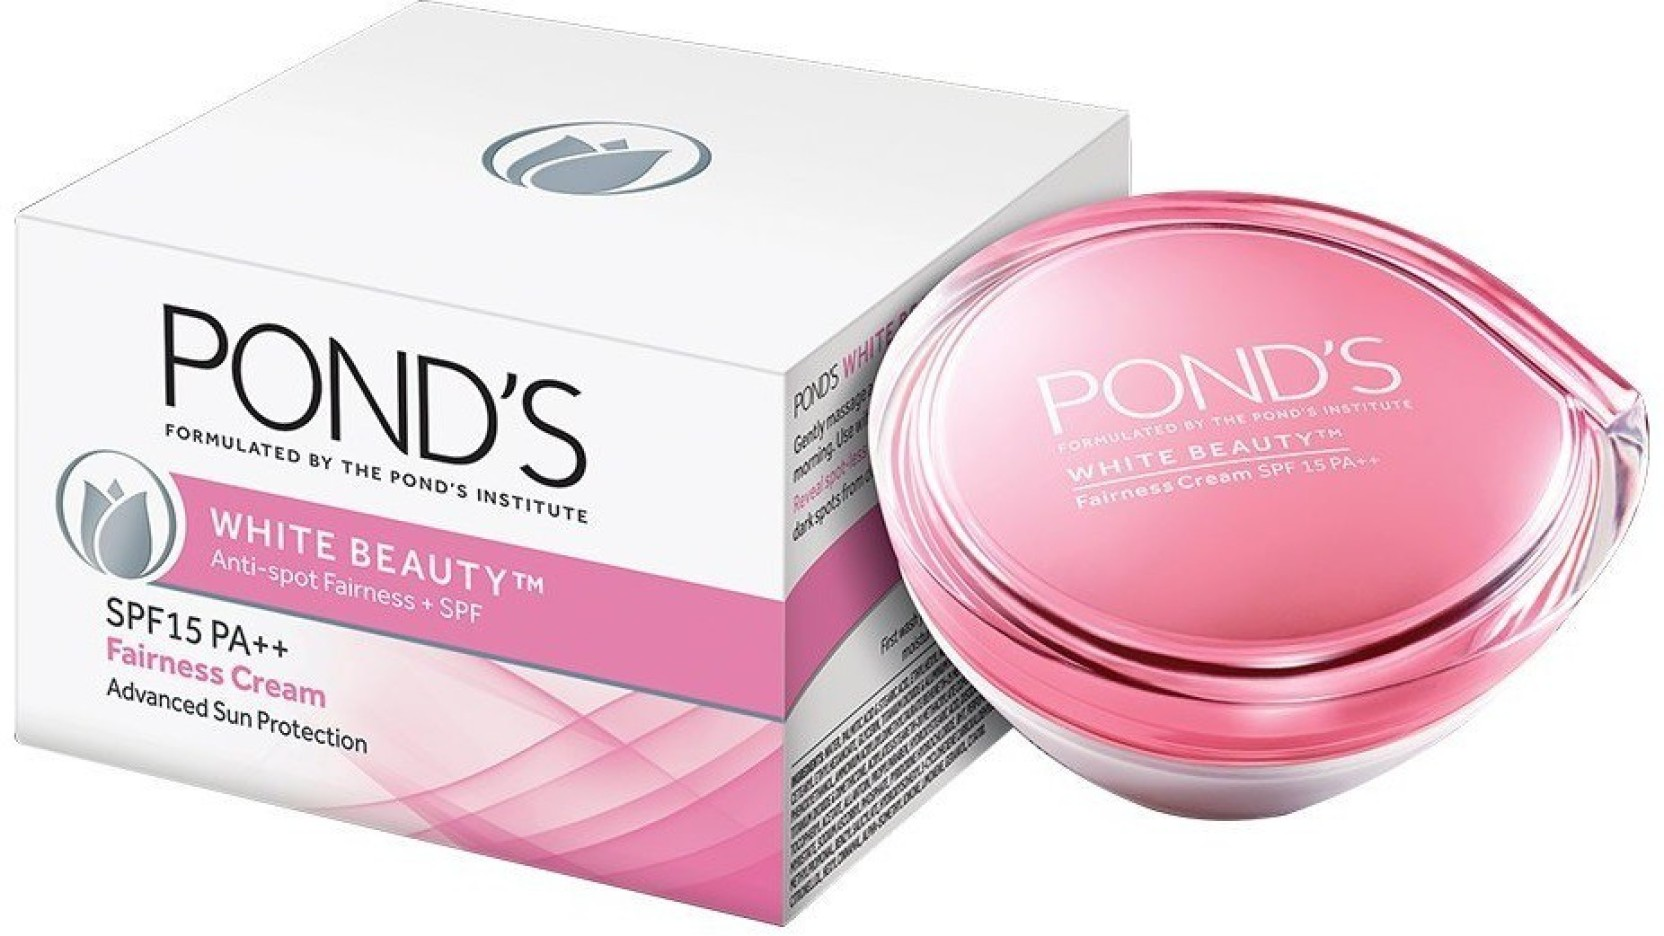 Ponds White Beauty Anti Spot Fairness SPF 15 Day Cream